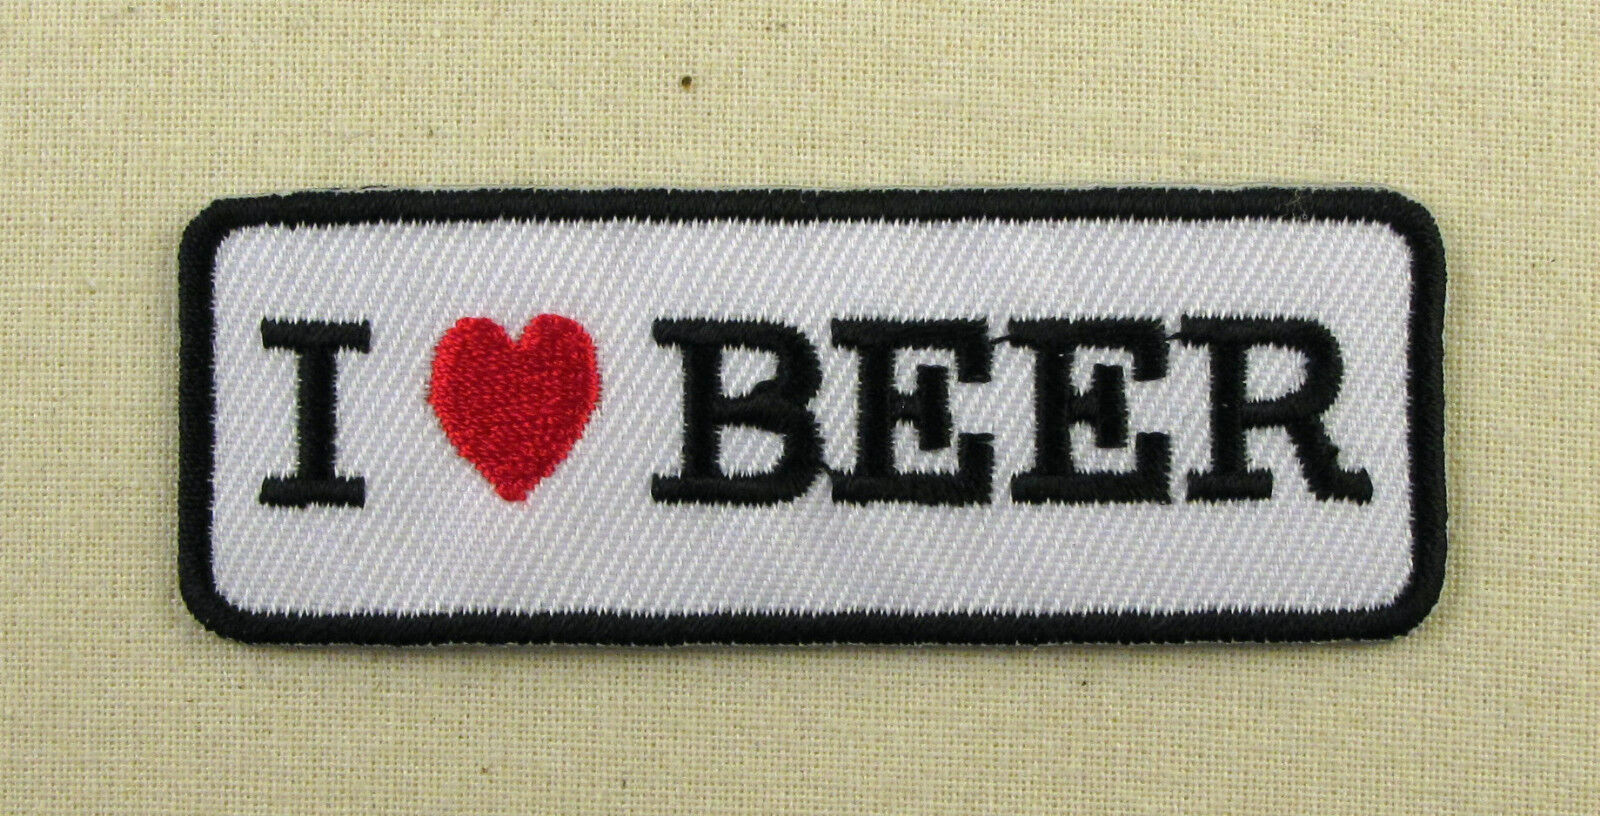 ` I LOVE BEER  ` Slogan Embroidered Iron On Sew On patch